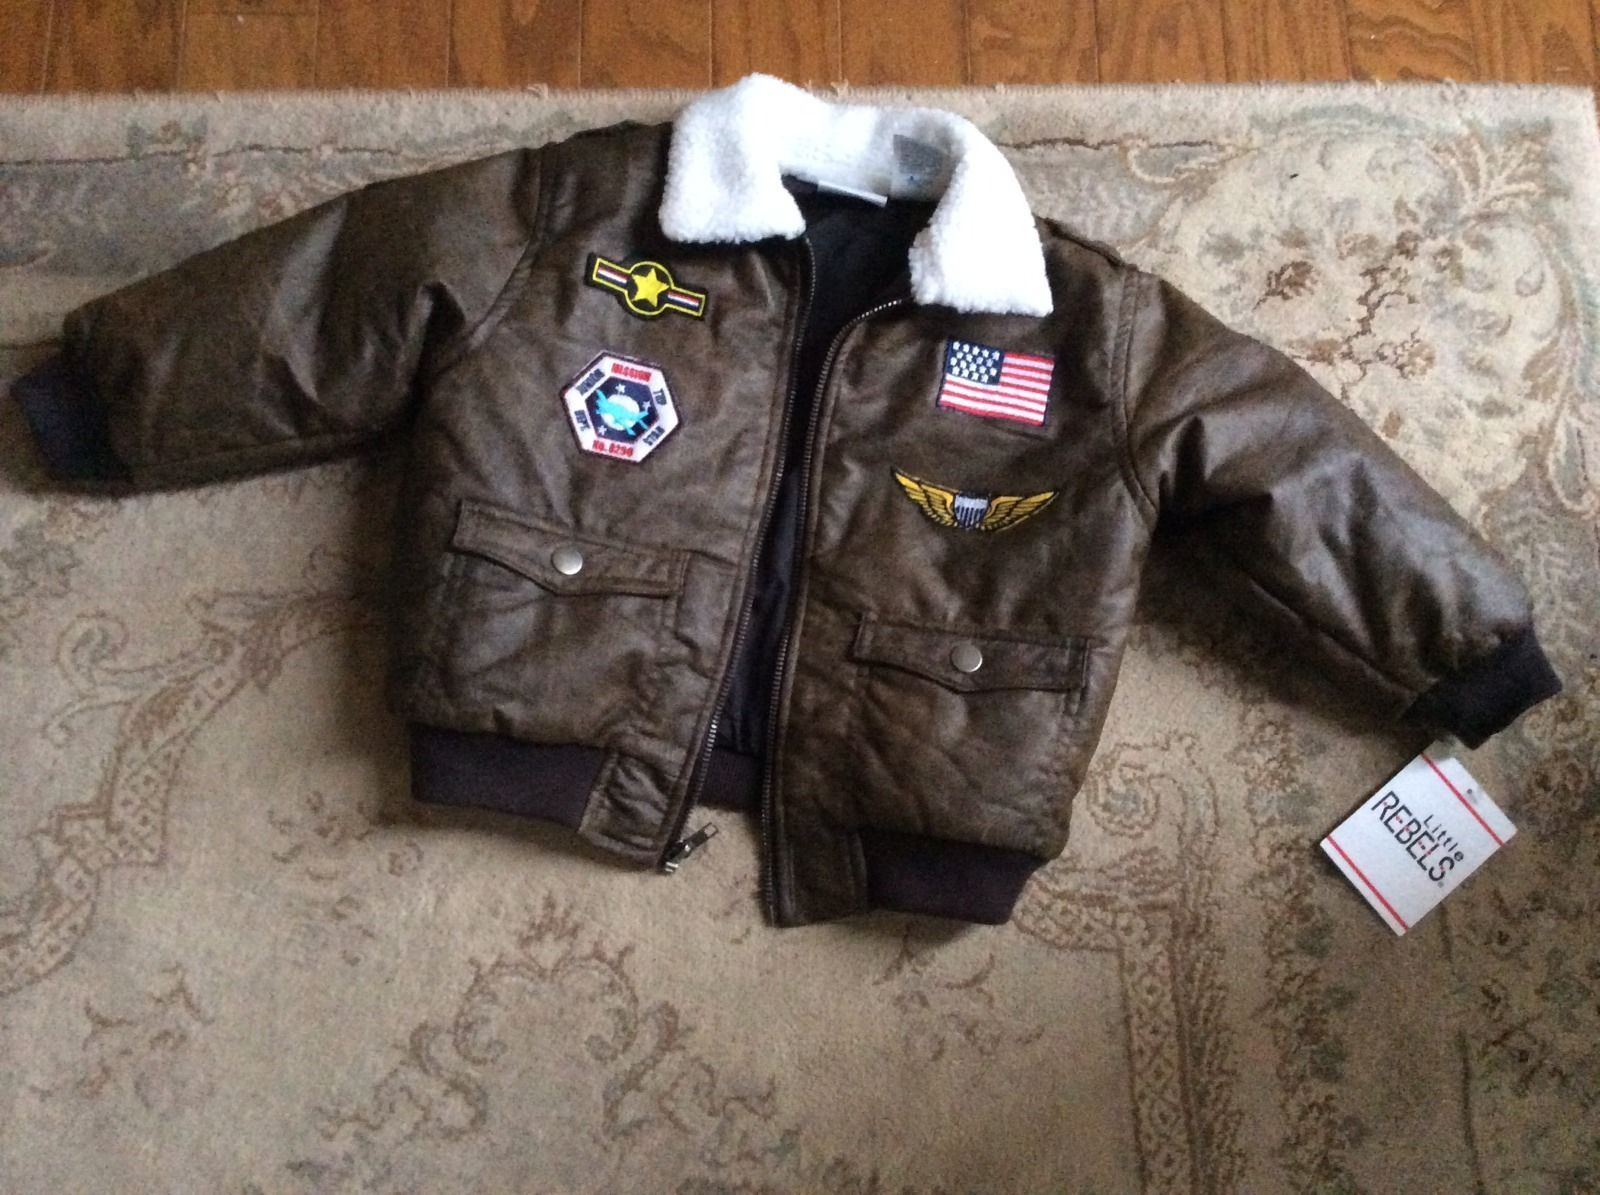 Brown Kids Faux Leather Distressed Bomber Jacket Airforce Patches Size 4t Leather Jacket Patches Jackets Brown Leather Jacket [ 1195 x 1600 Pixel ]